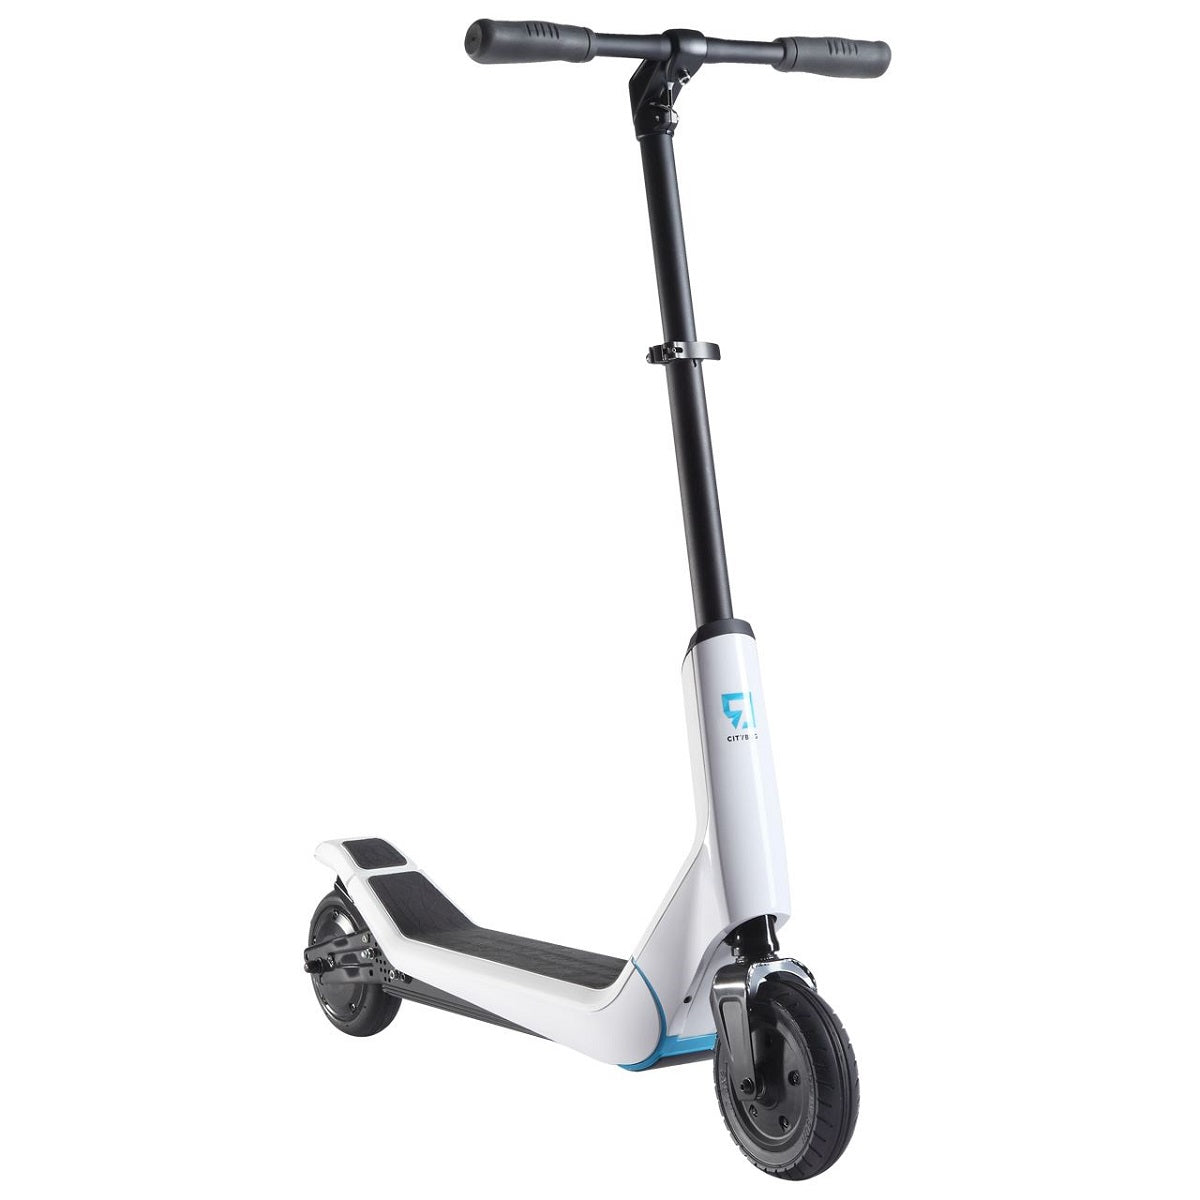 City Bug S Electric Scooter